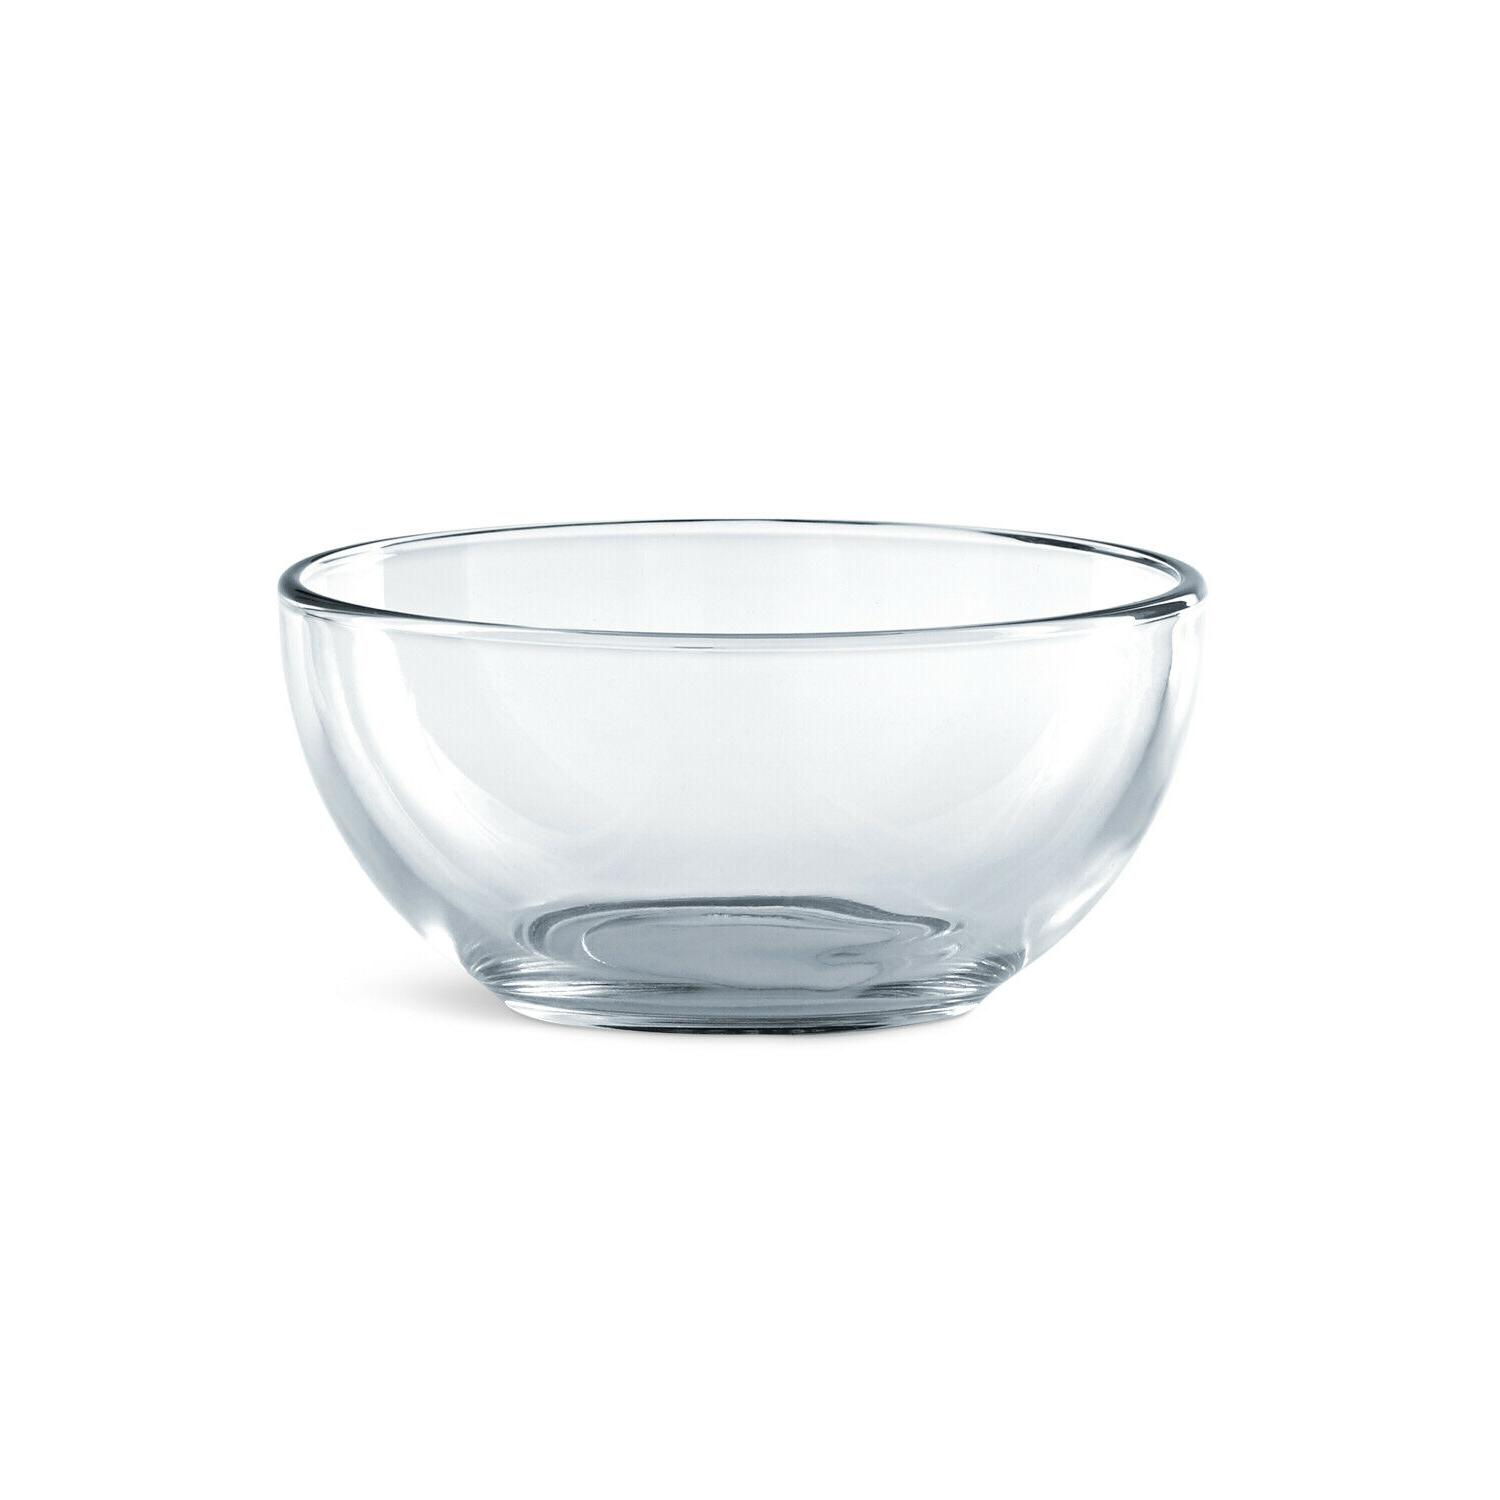 Dinnerware 12 Pcs Modern Thick Clear Glass Dinner Bowls Dishes